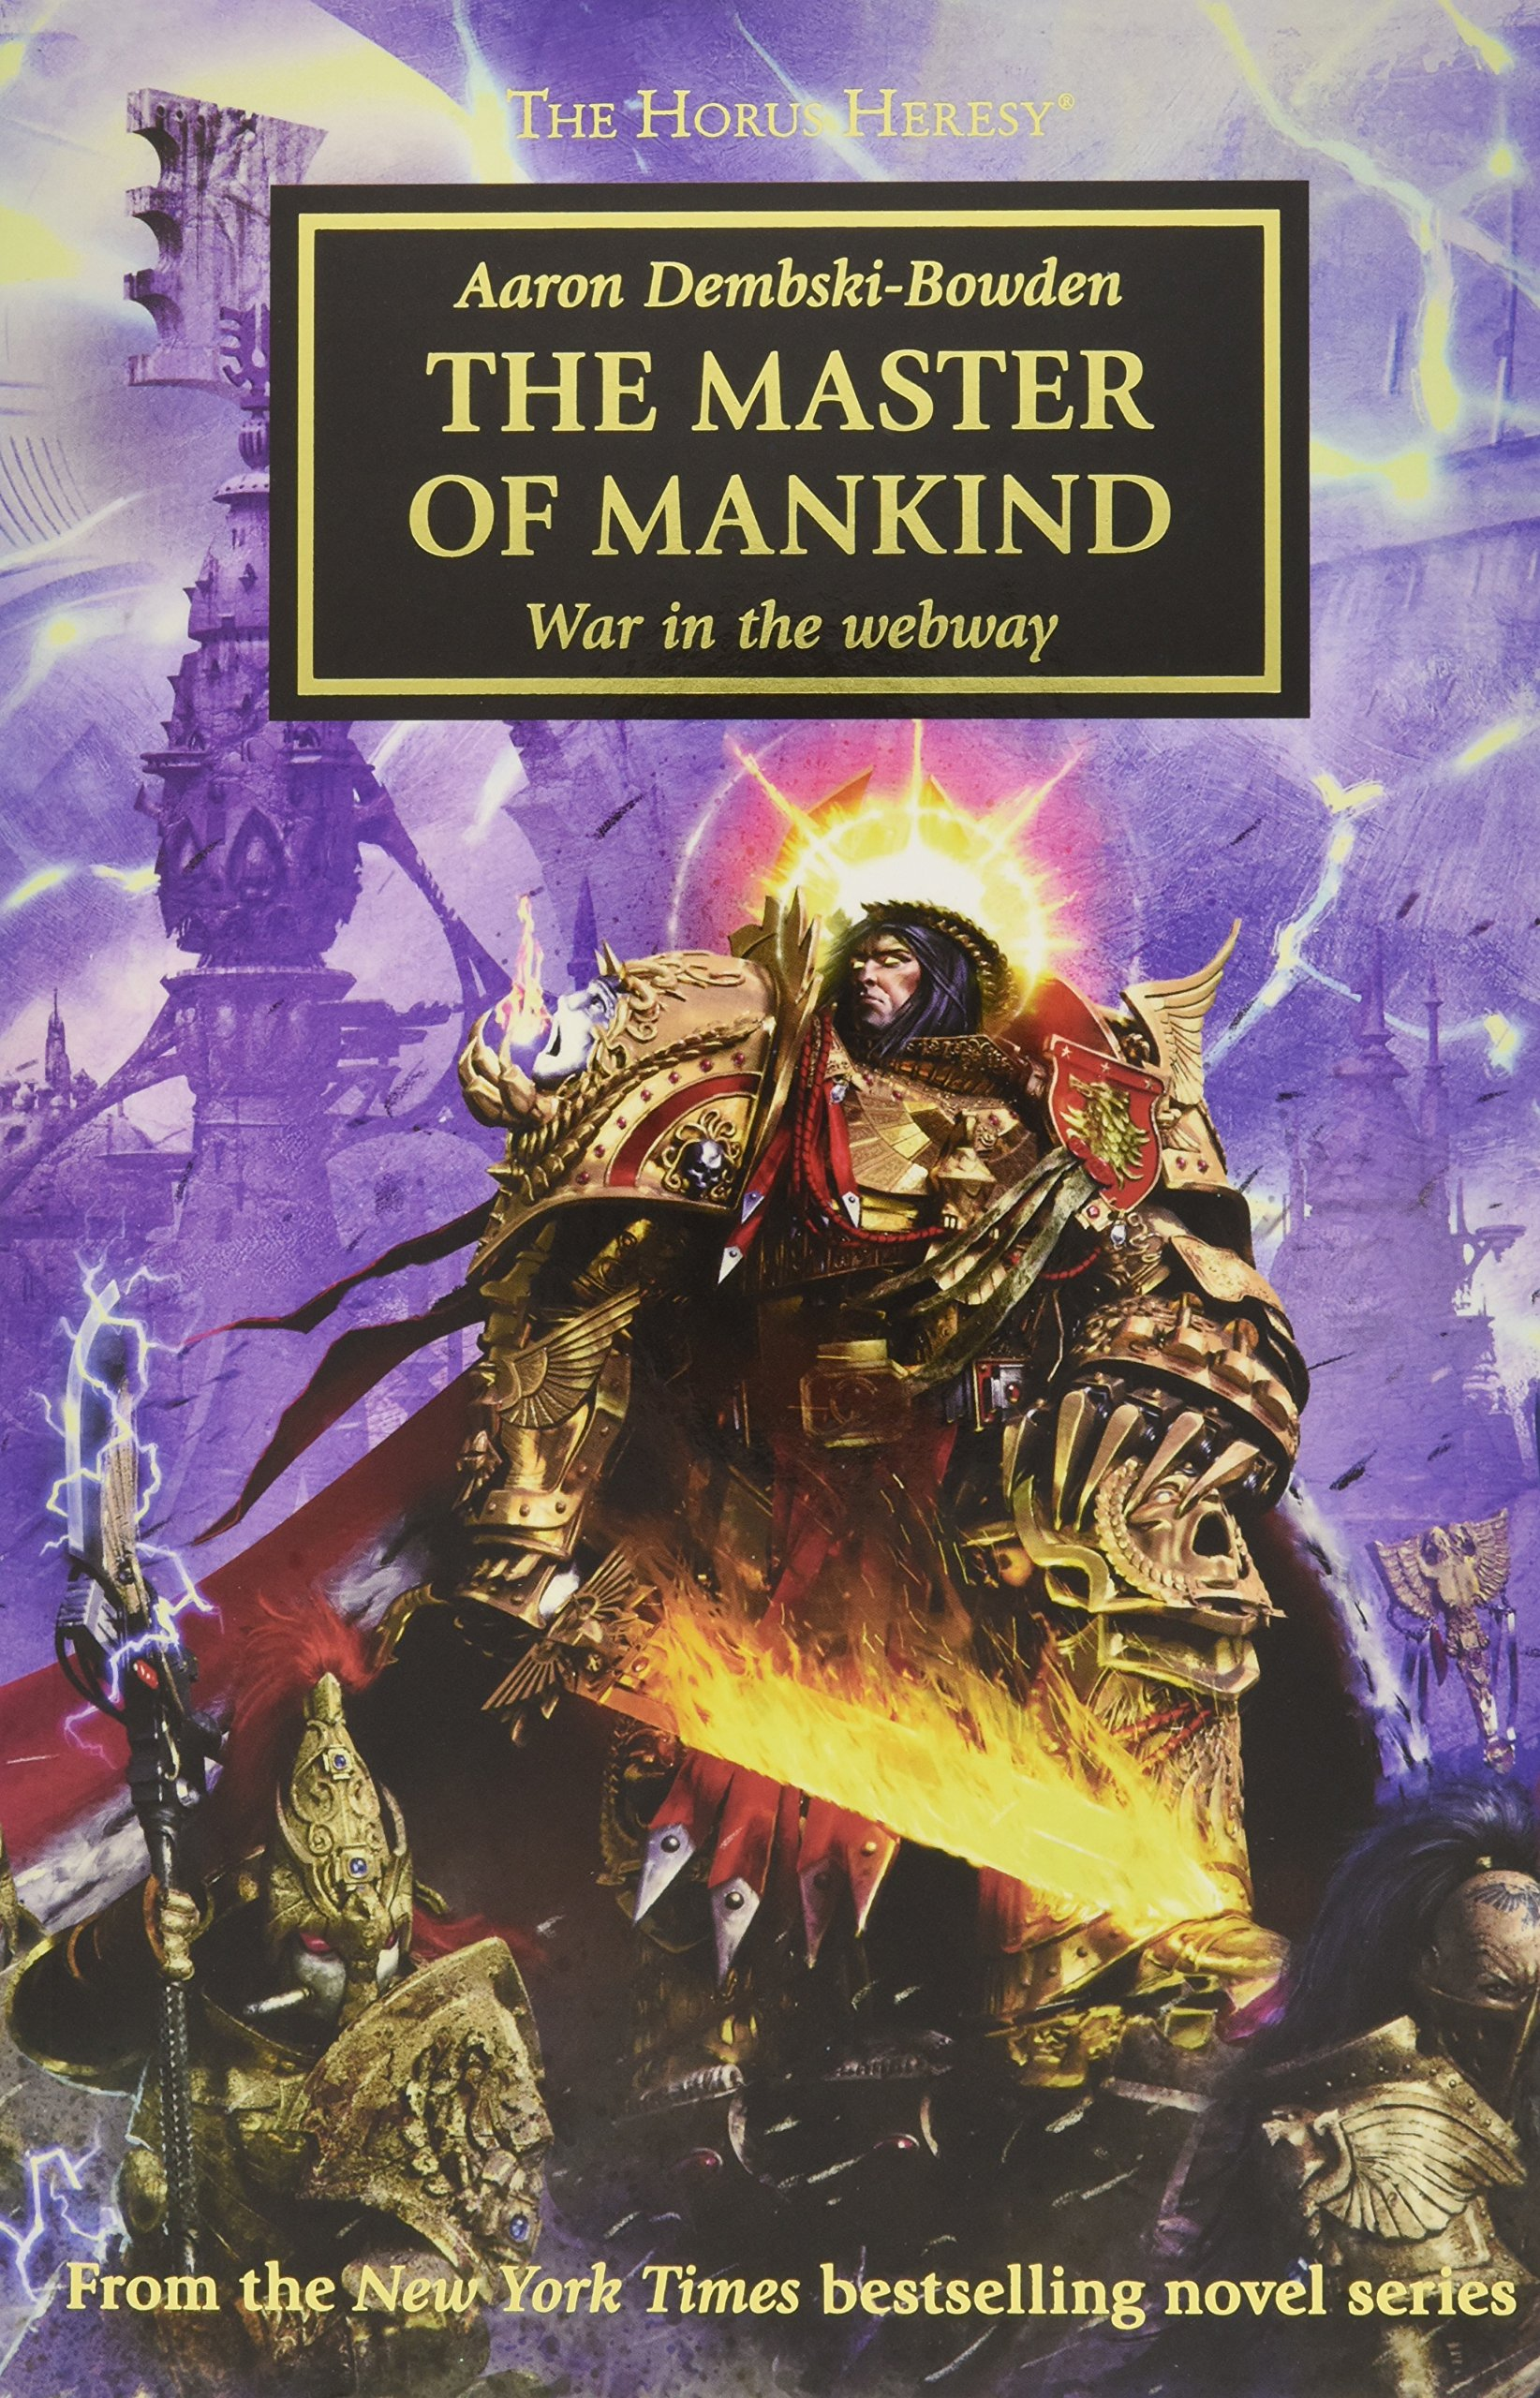 Download The Master of Mankind (The Horus Heresy) PDF